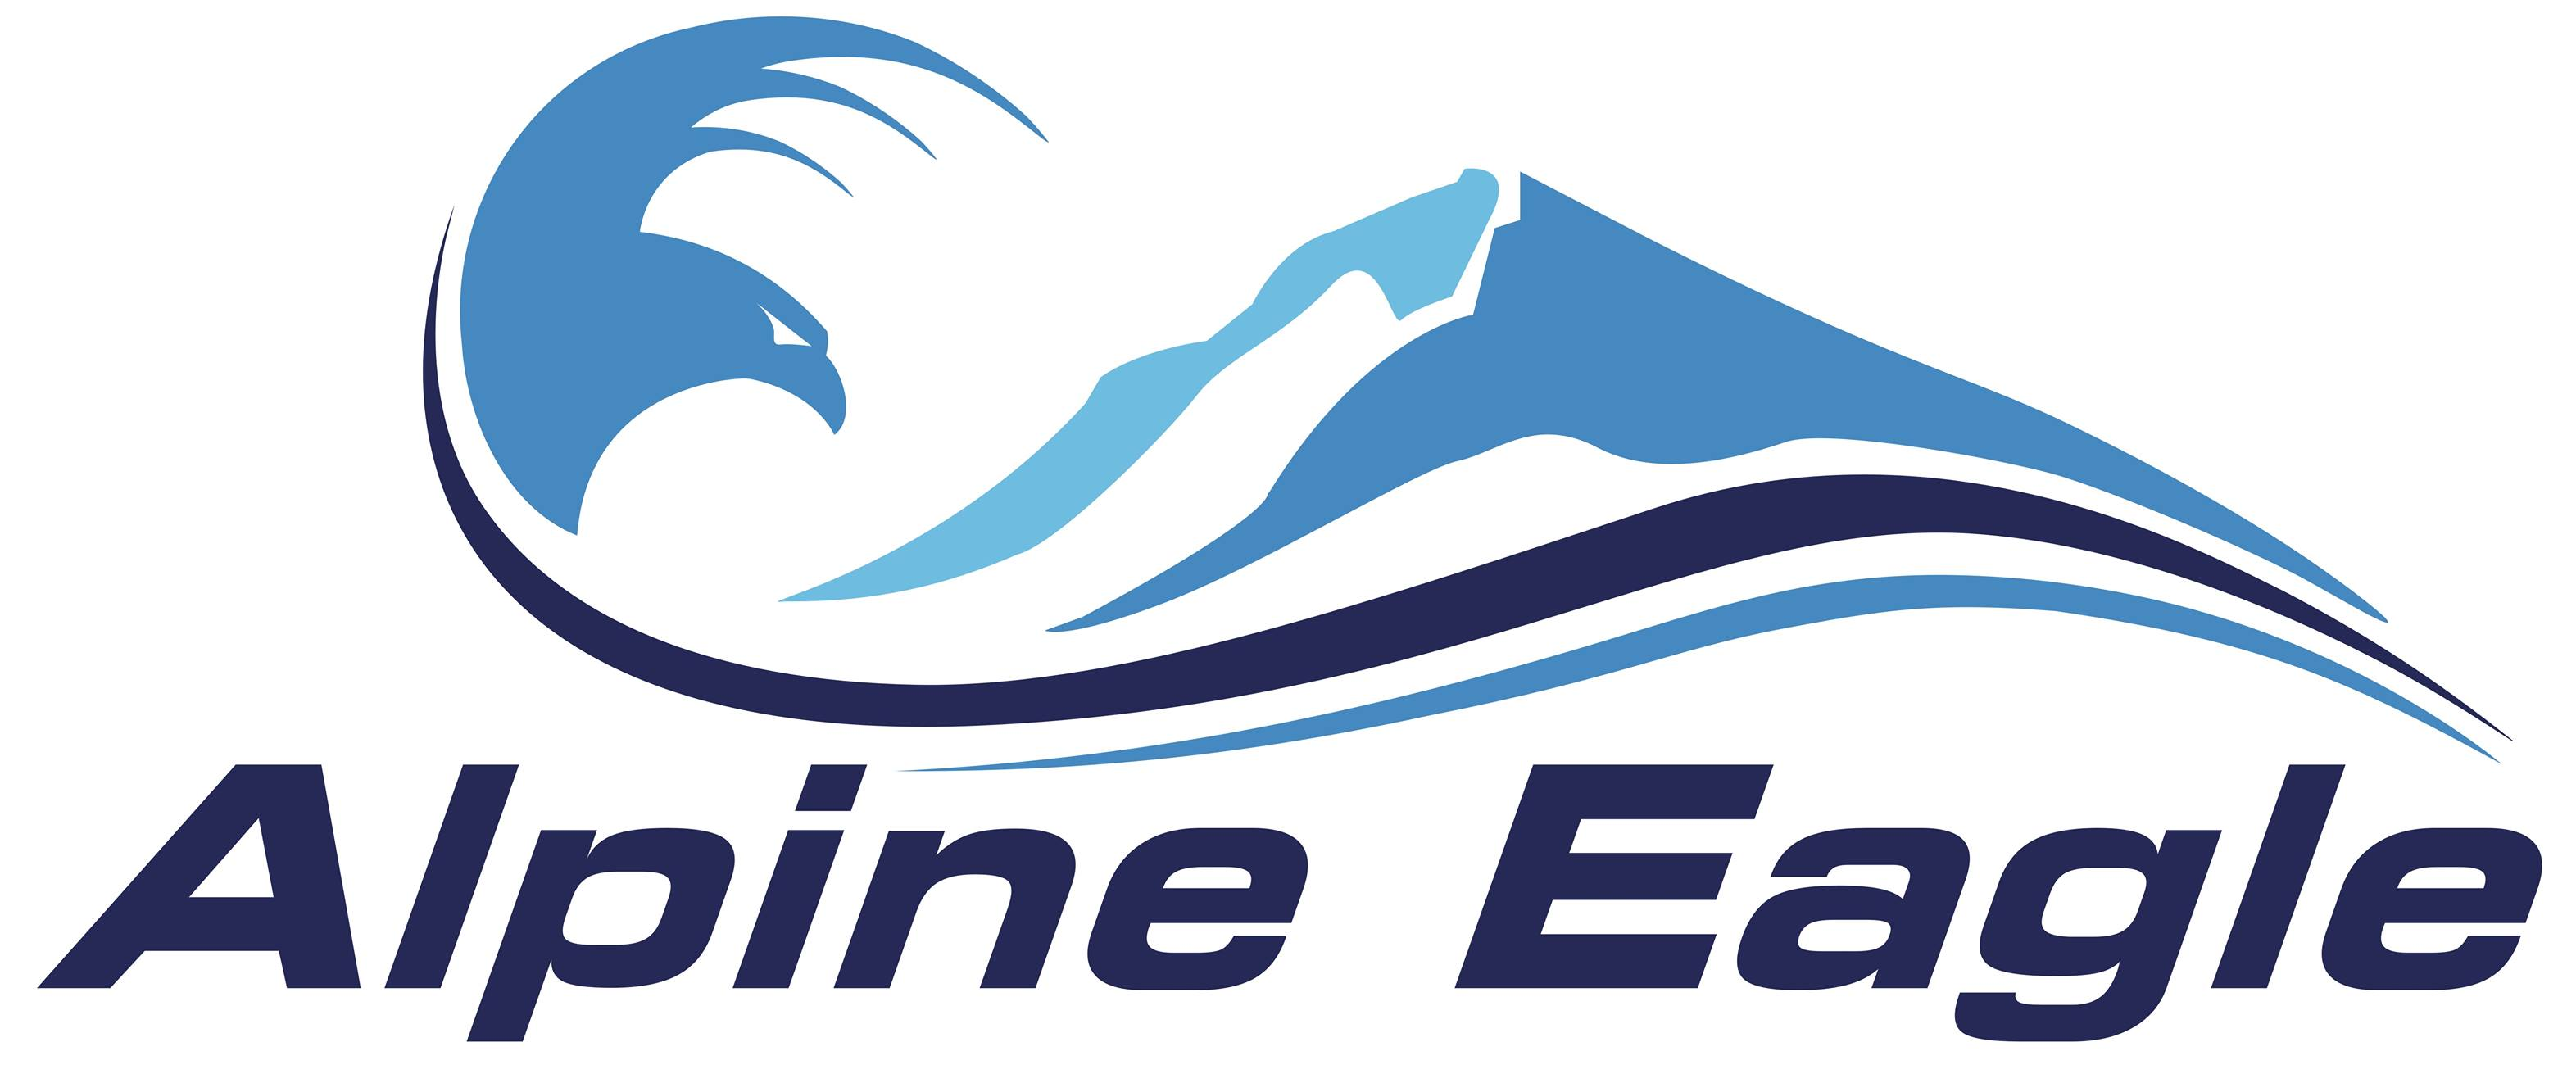 Alpine Eagle